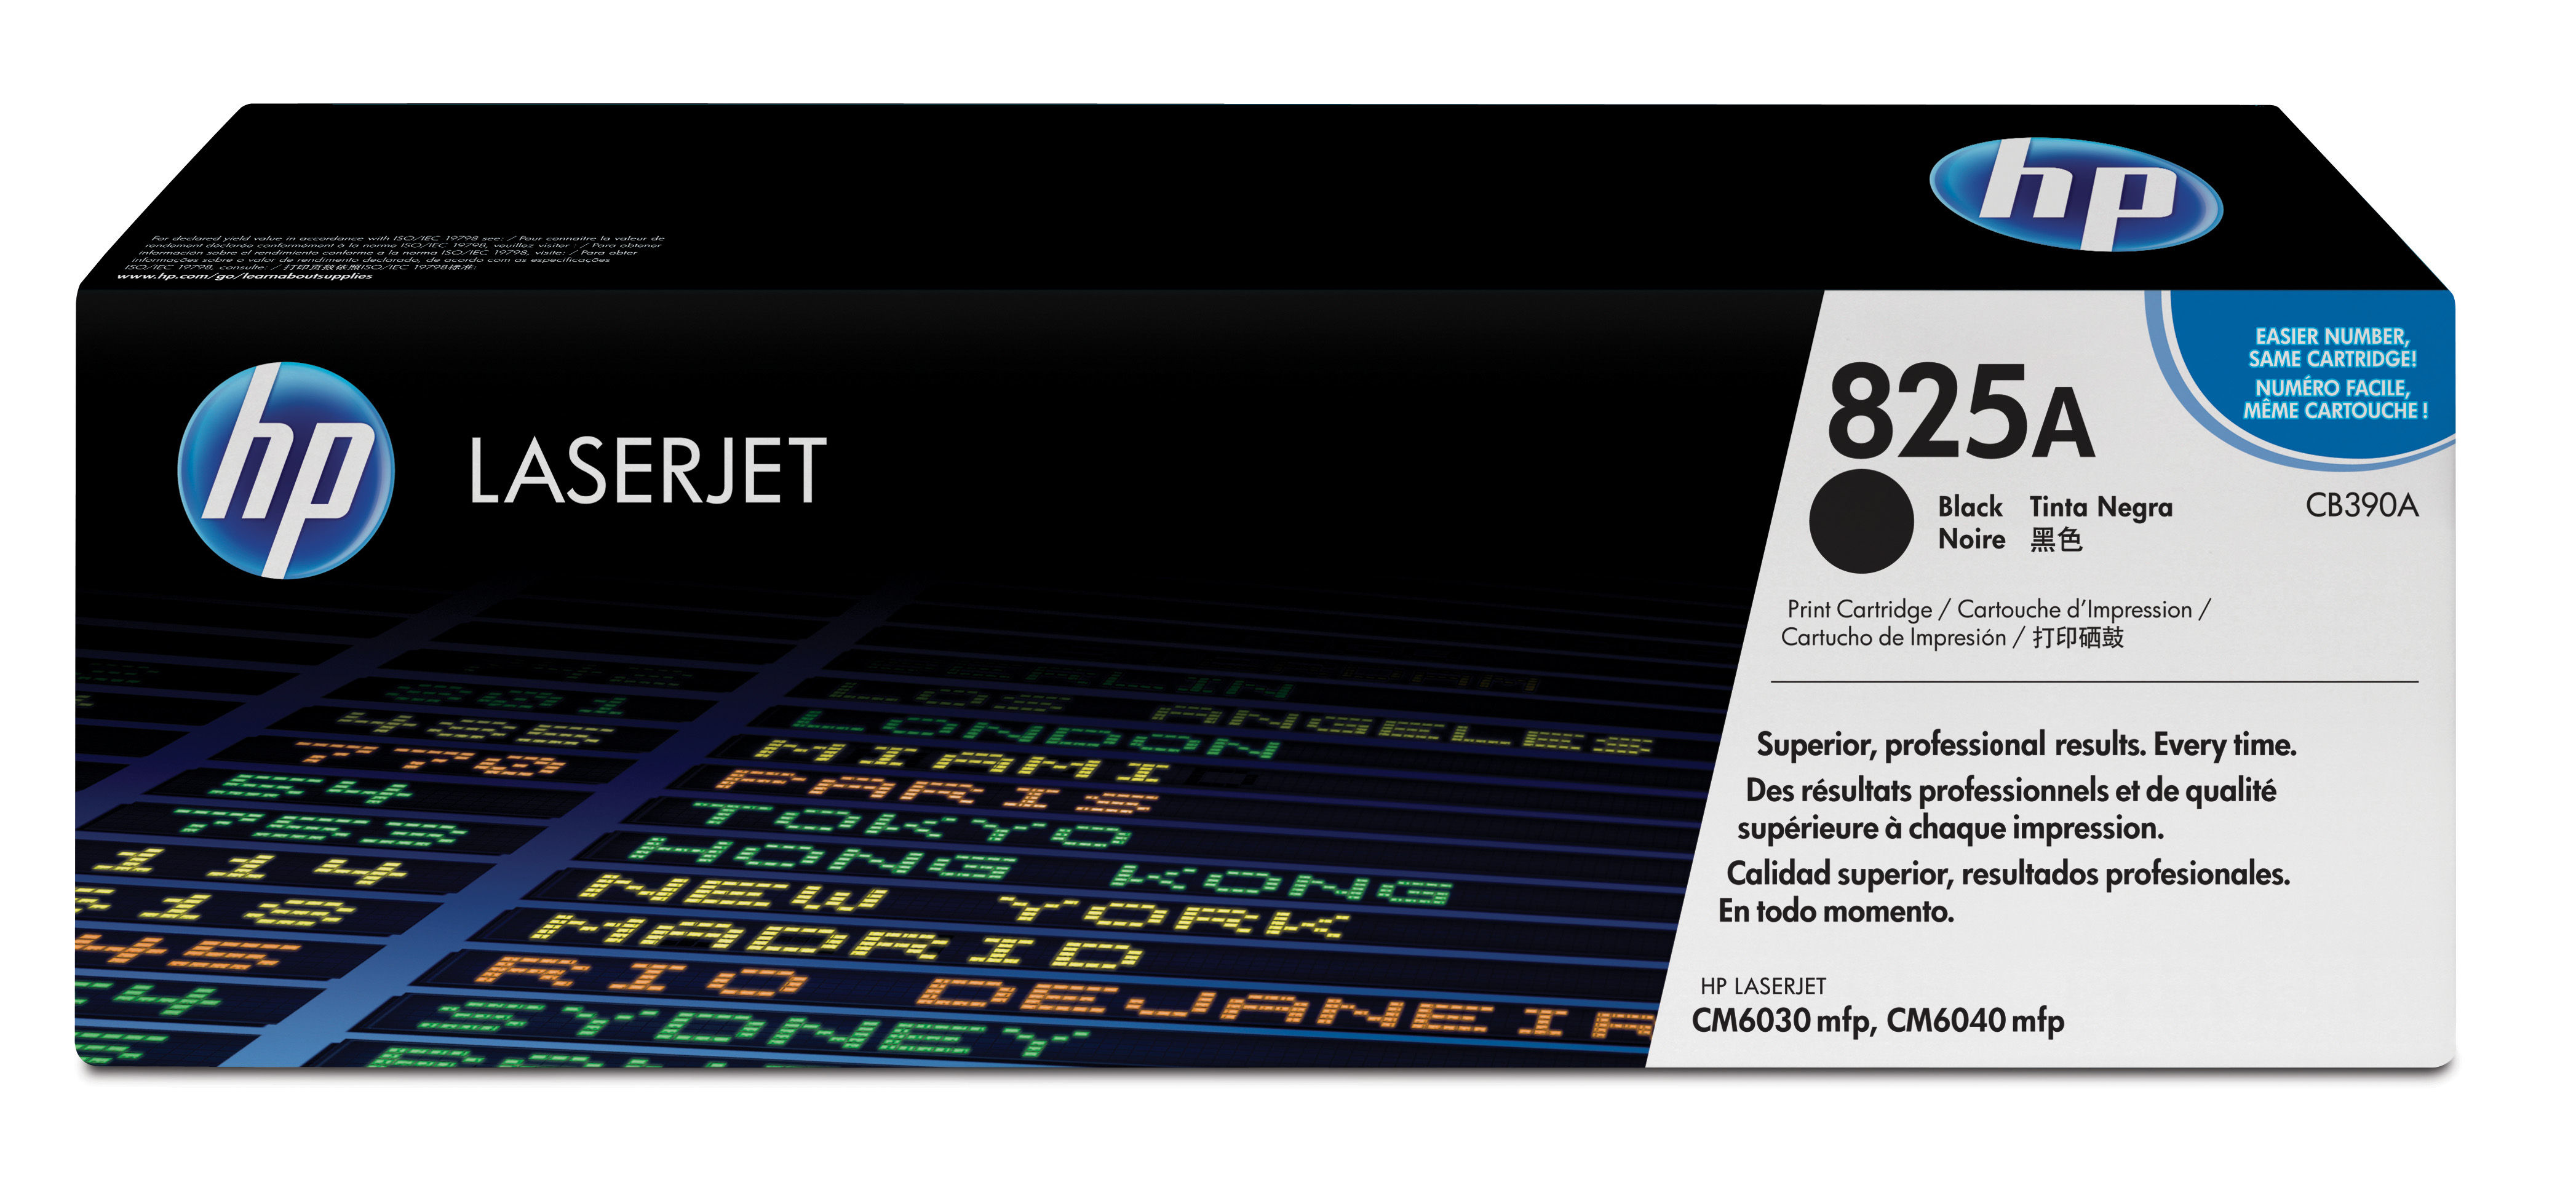 Remanufactured HP CB390A Toner Cartridge Black CB390A - rem01